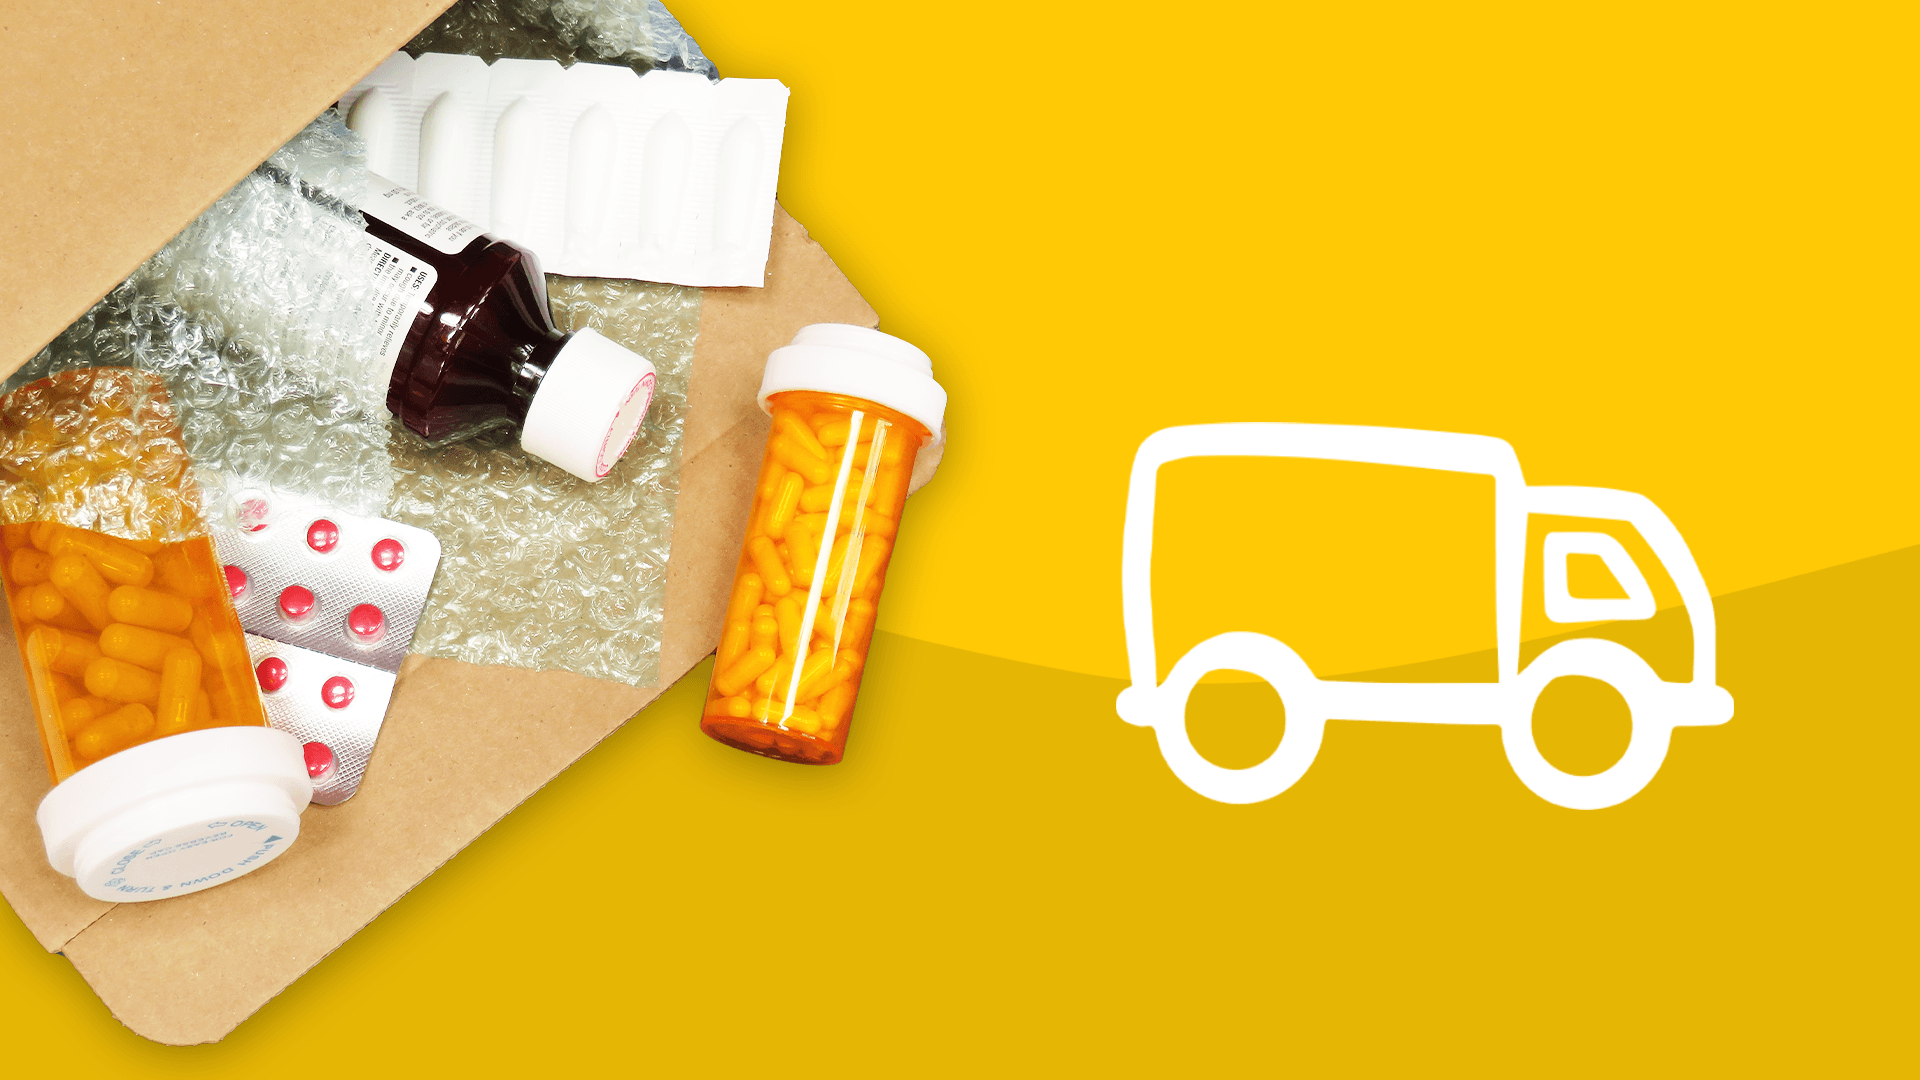 Mail order pharmacy: What you should know about getting Rx by mail